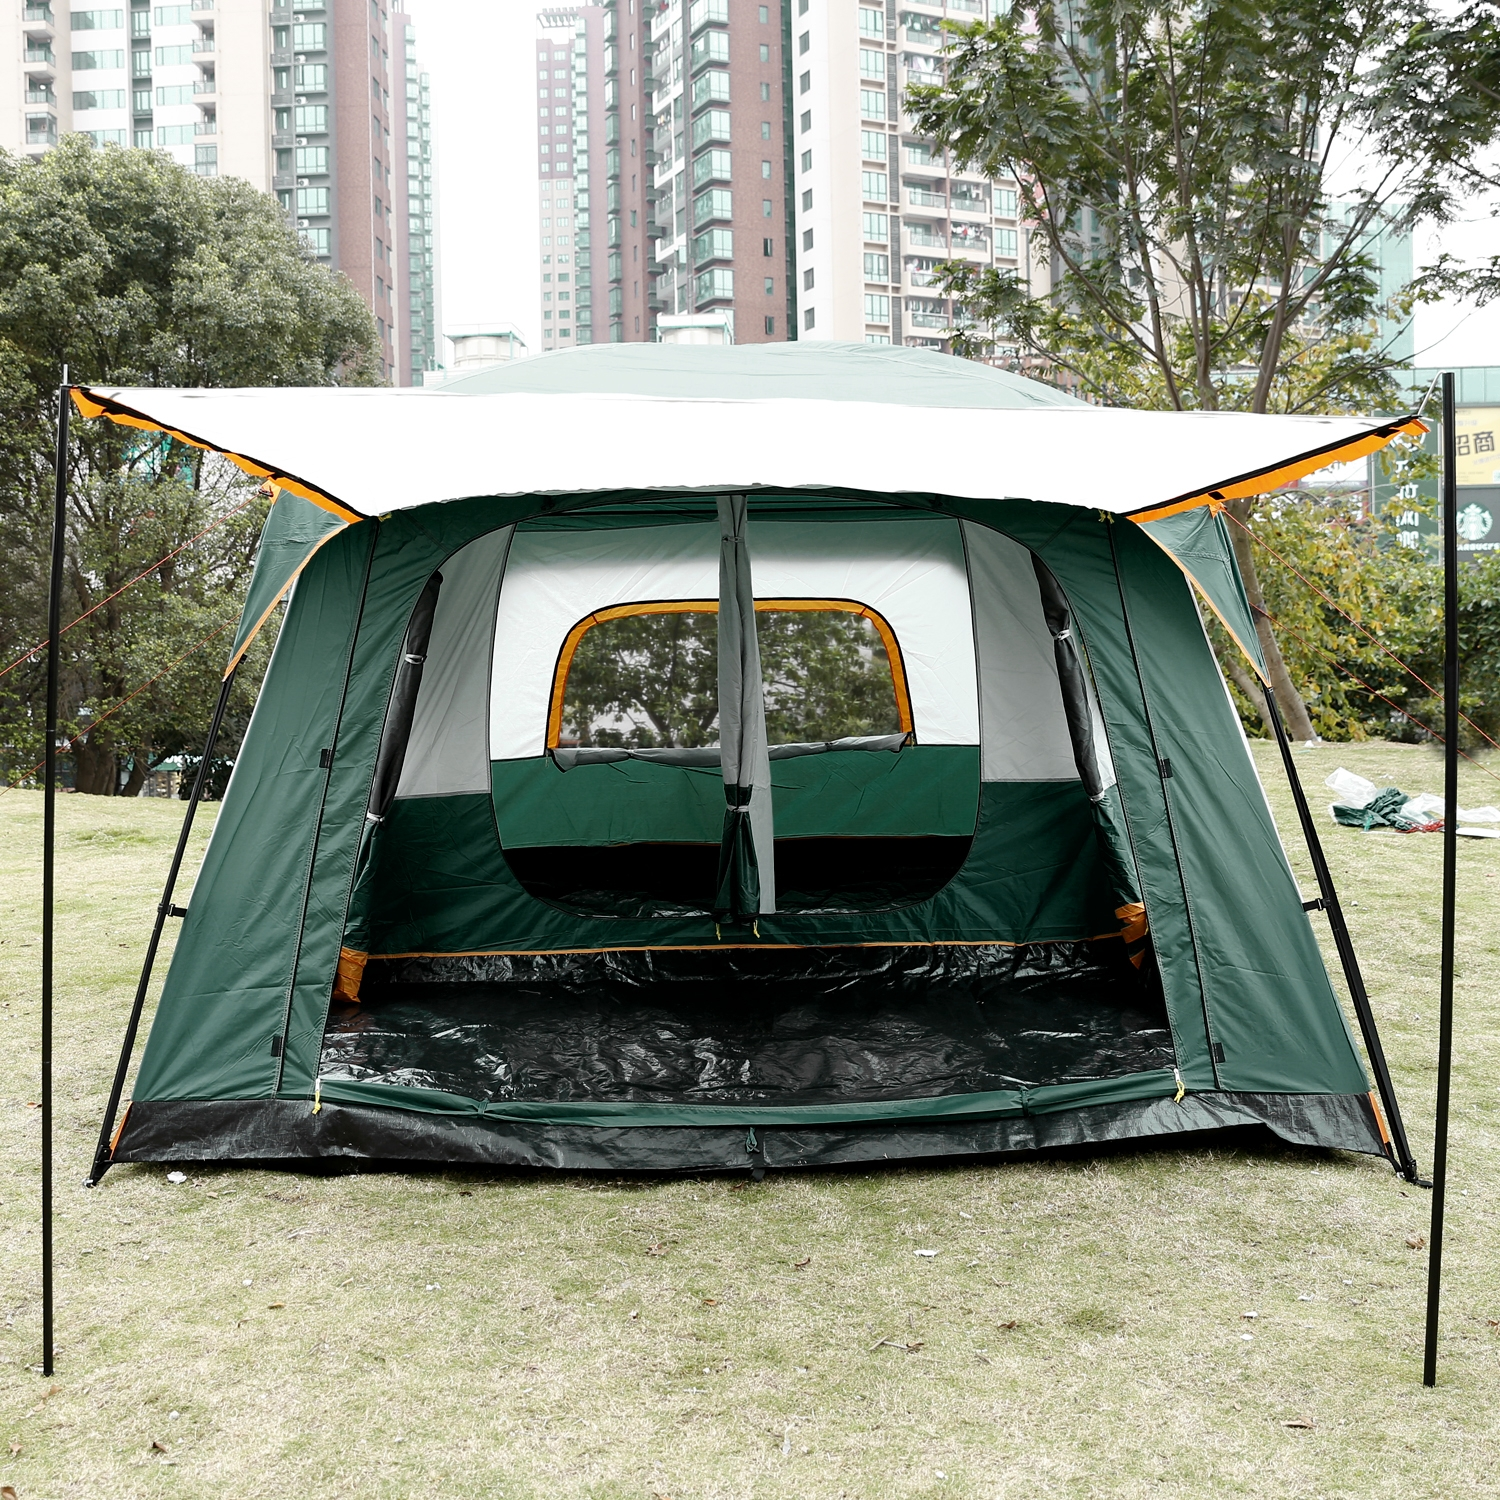 8-Person Family Tent for Outdoor C&ing Hiking 2-Bedroom 1-Living Room & Family Camping Tents